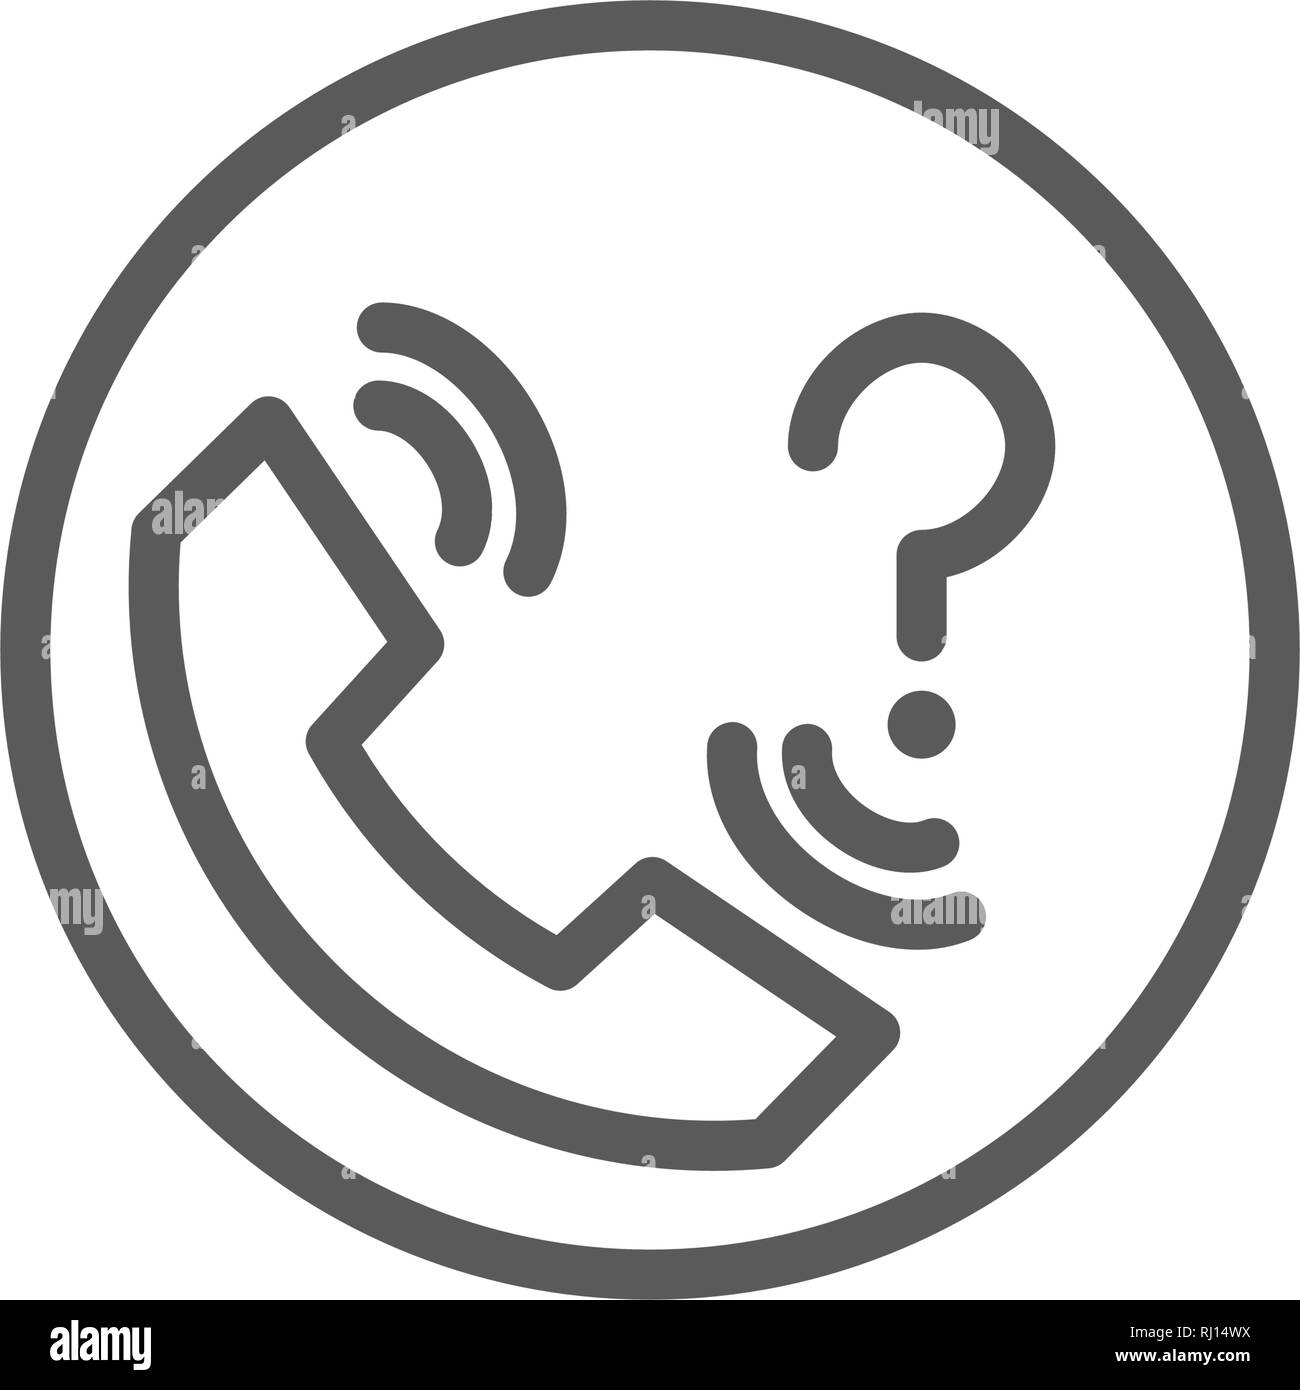 Contact support with question mark line icon. - Stock Image